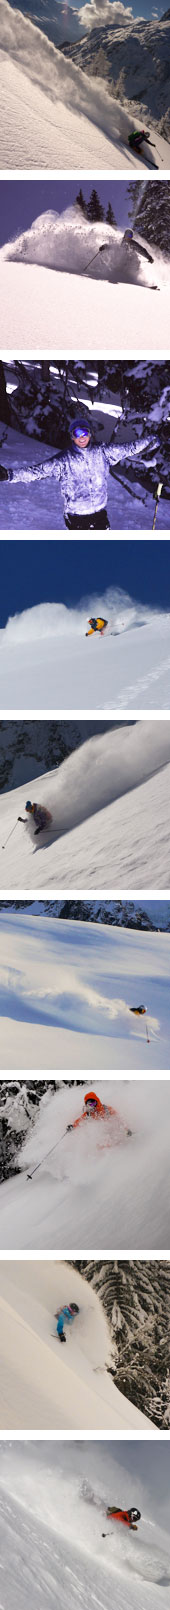 guided off piste skiing ski best snow